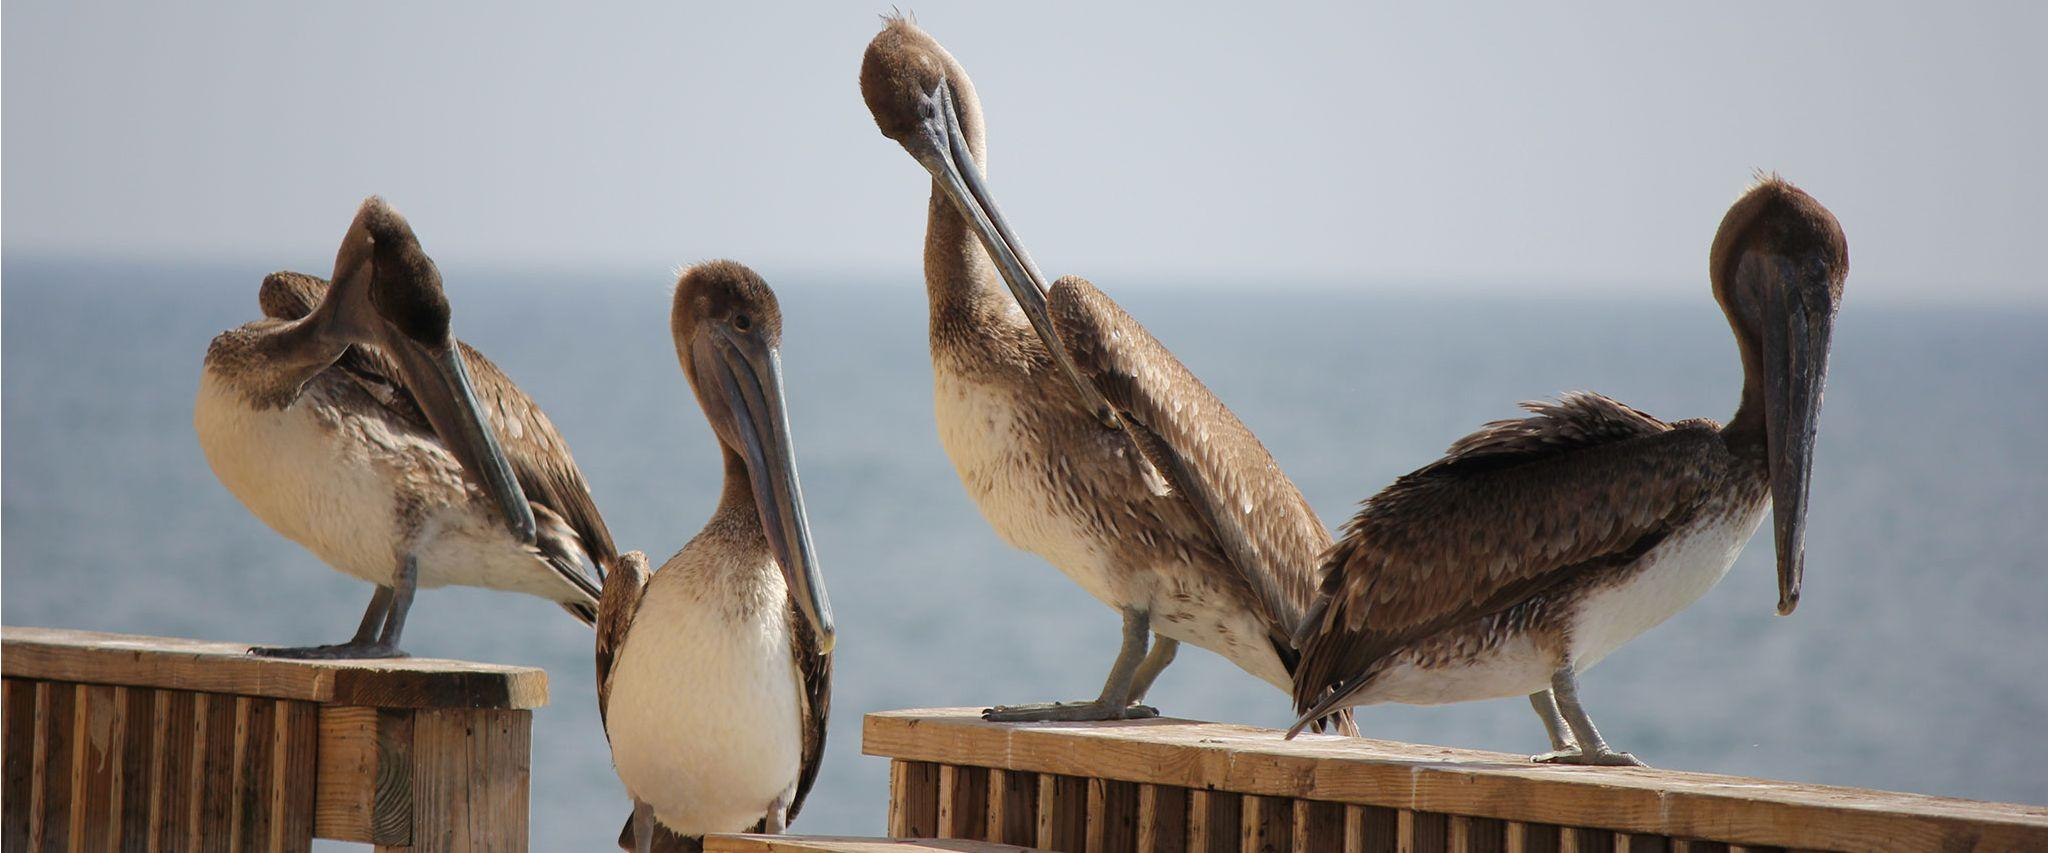 Pelicans on pier in Gulf Shores AL